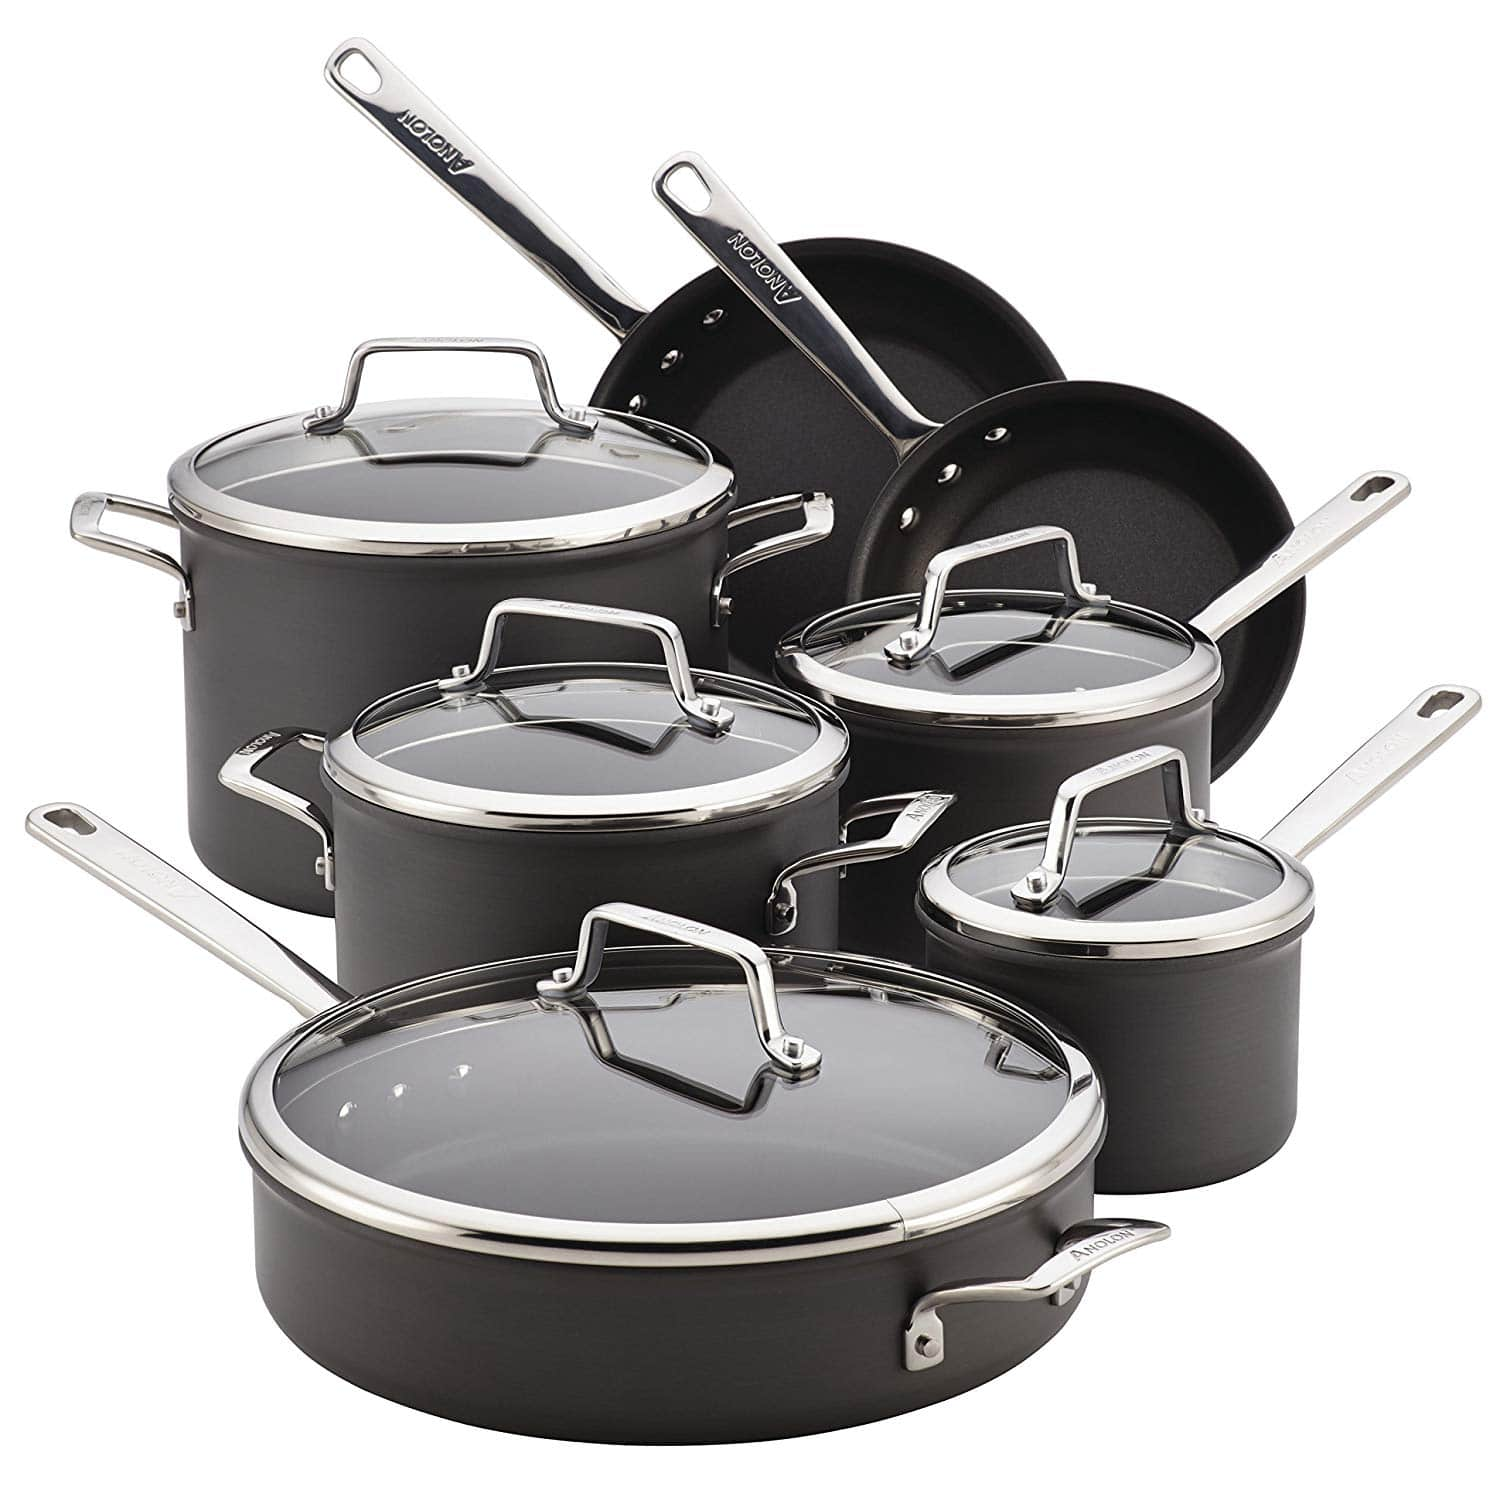 5 Best Anolon Cookware for your Kitchen